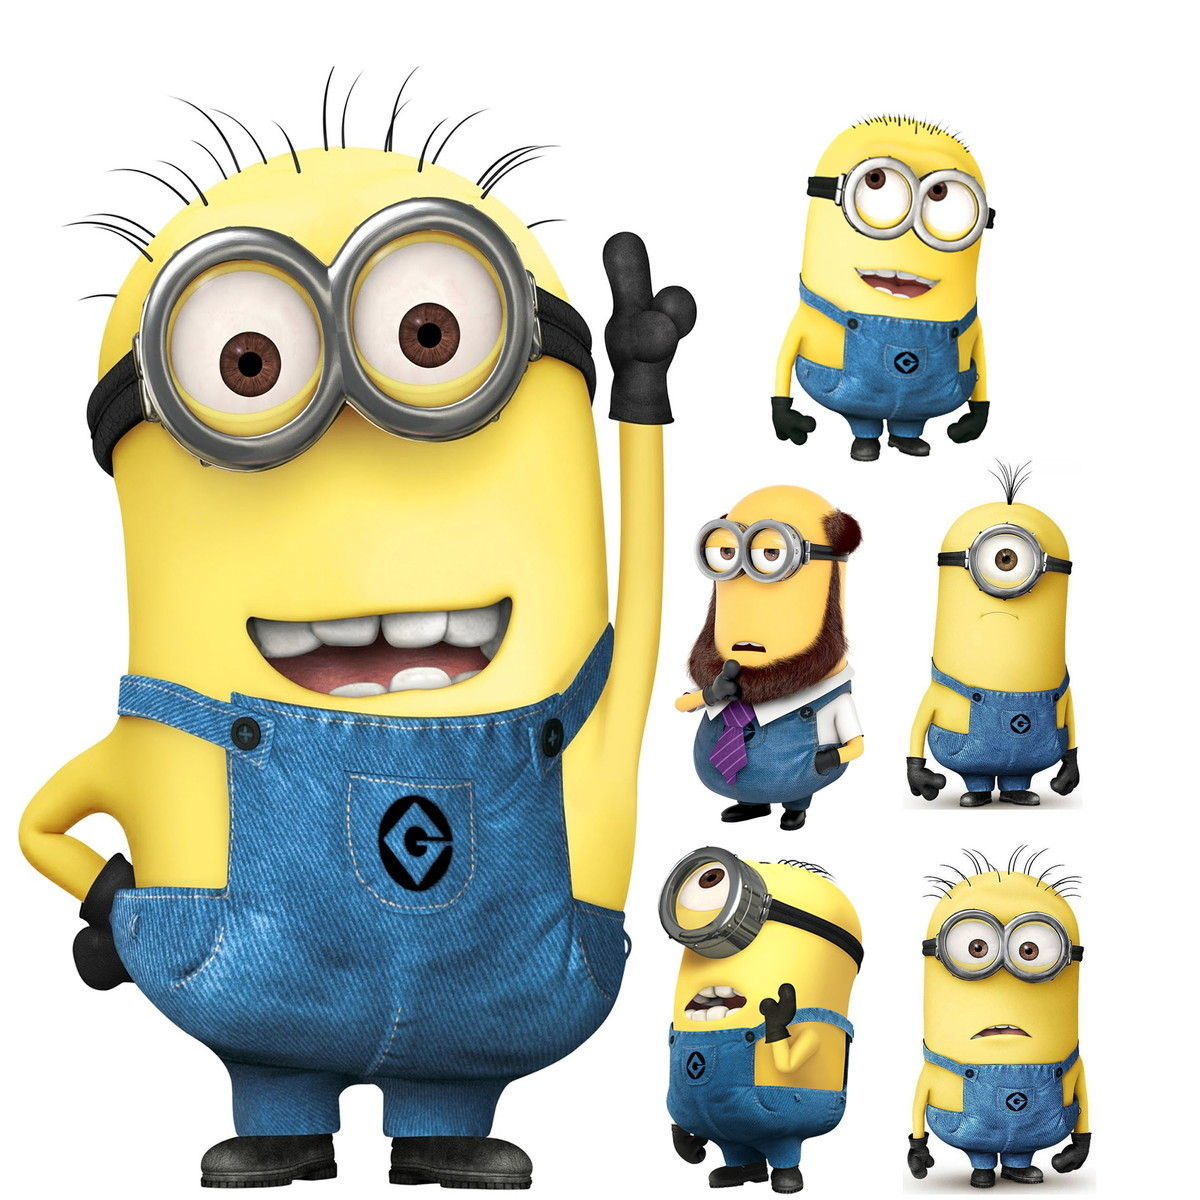 Want To Be A Minion?